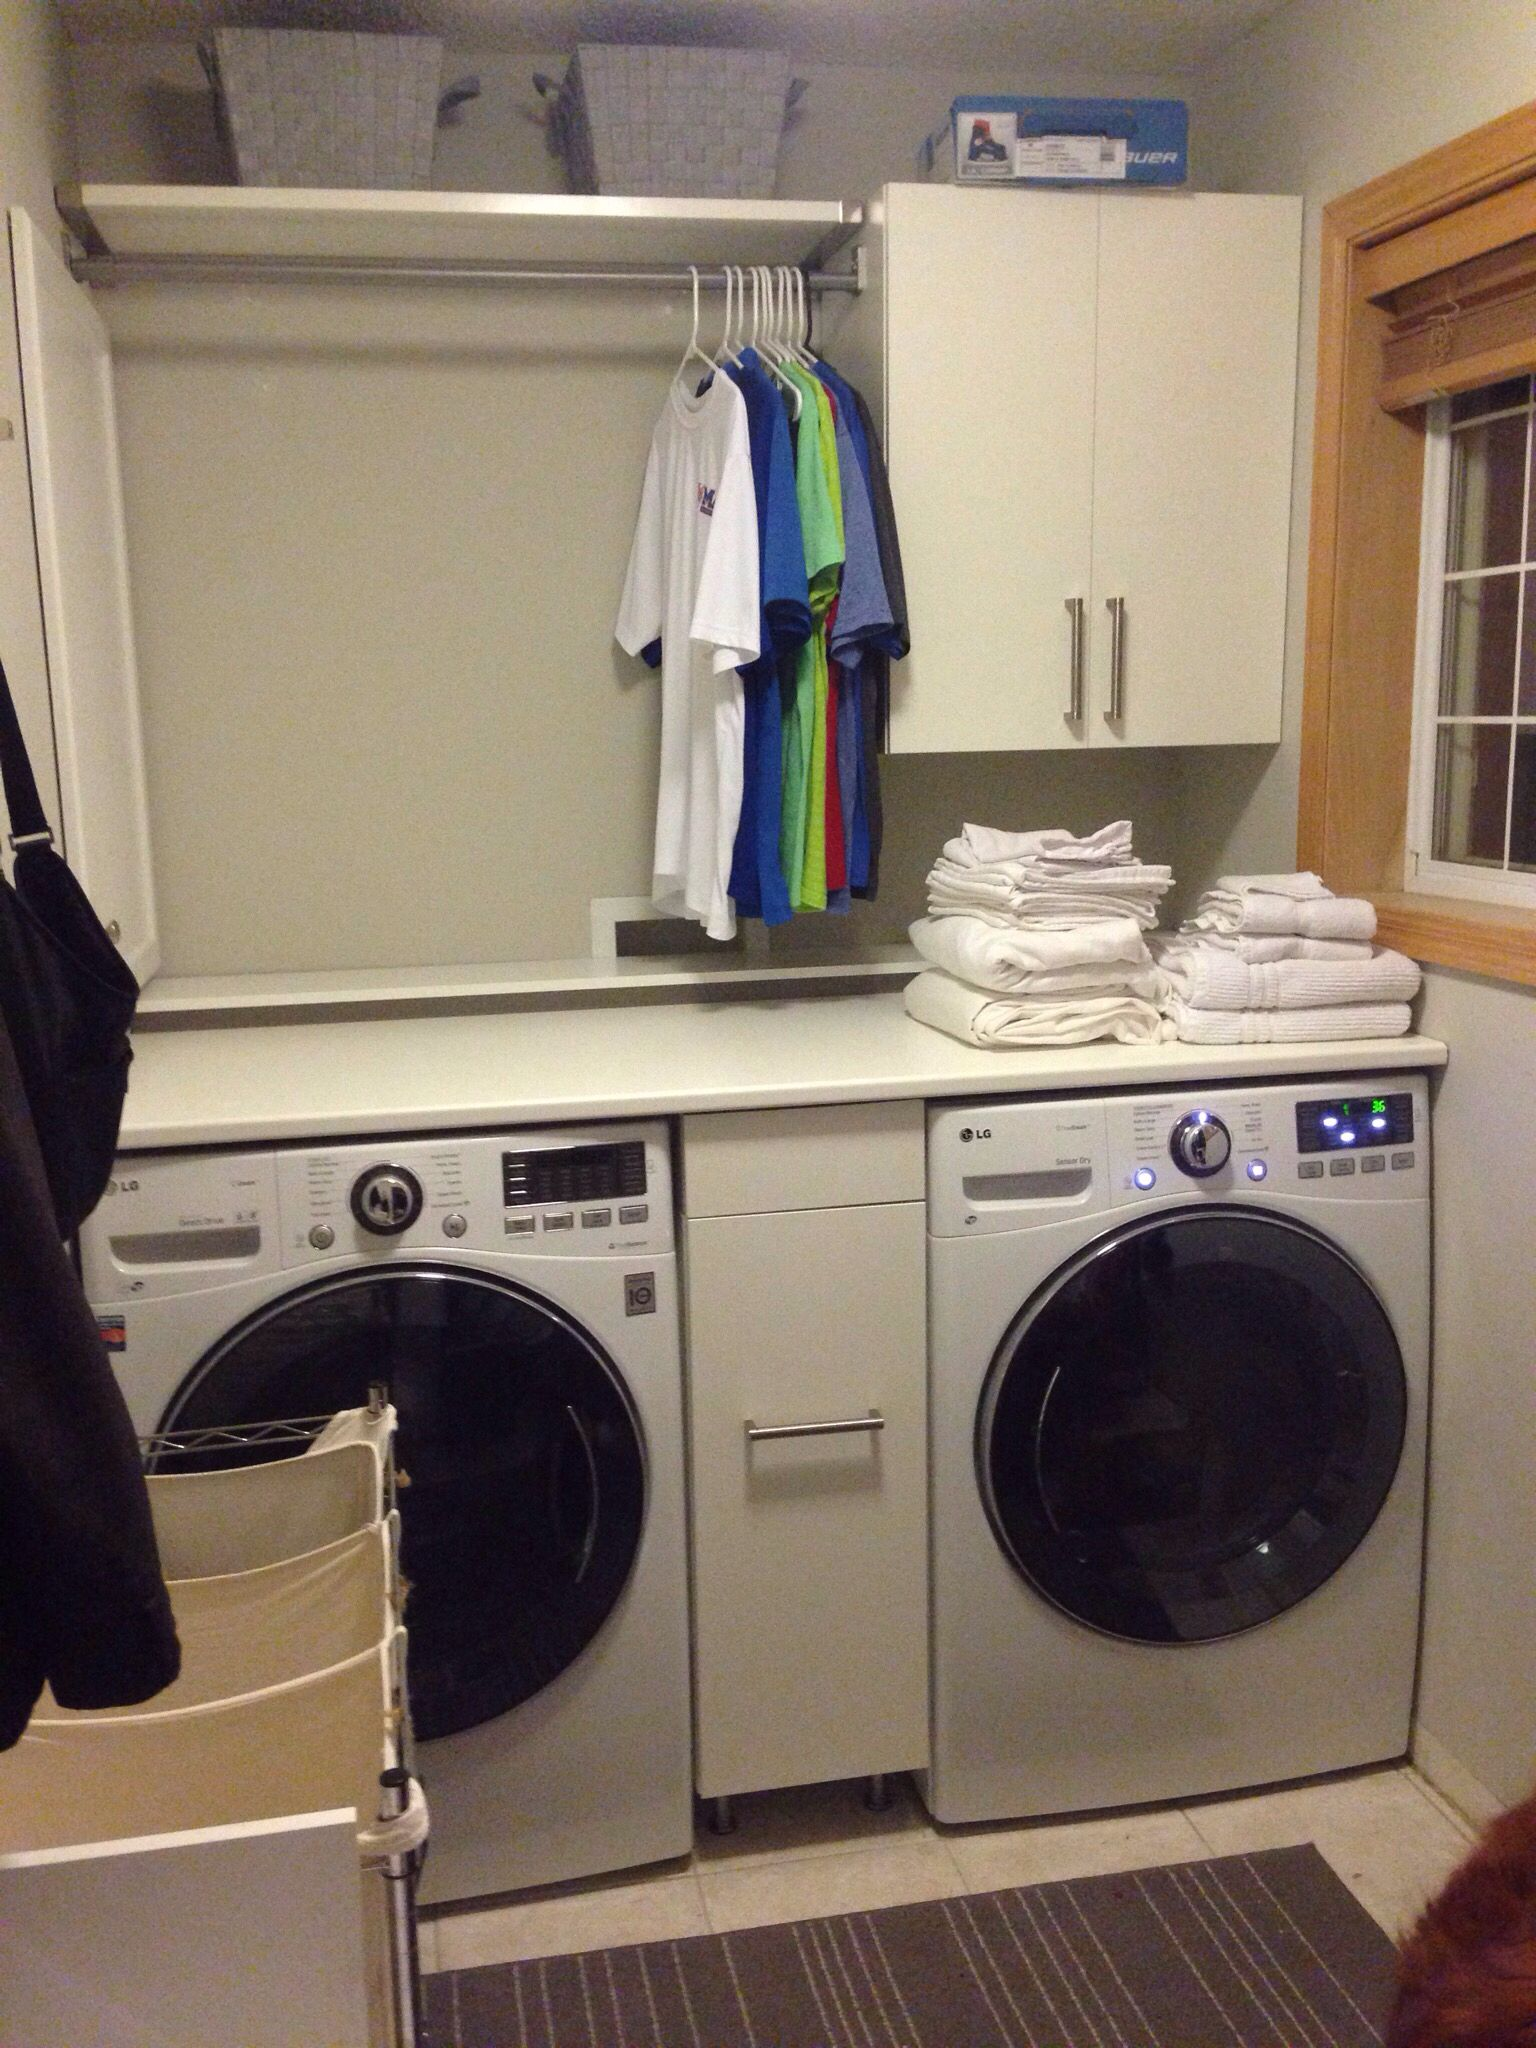 Laundry Room Ikea Hack Laundry Room Hacks Laundry Room Countertop Ikea Laundry Room